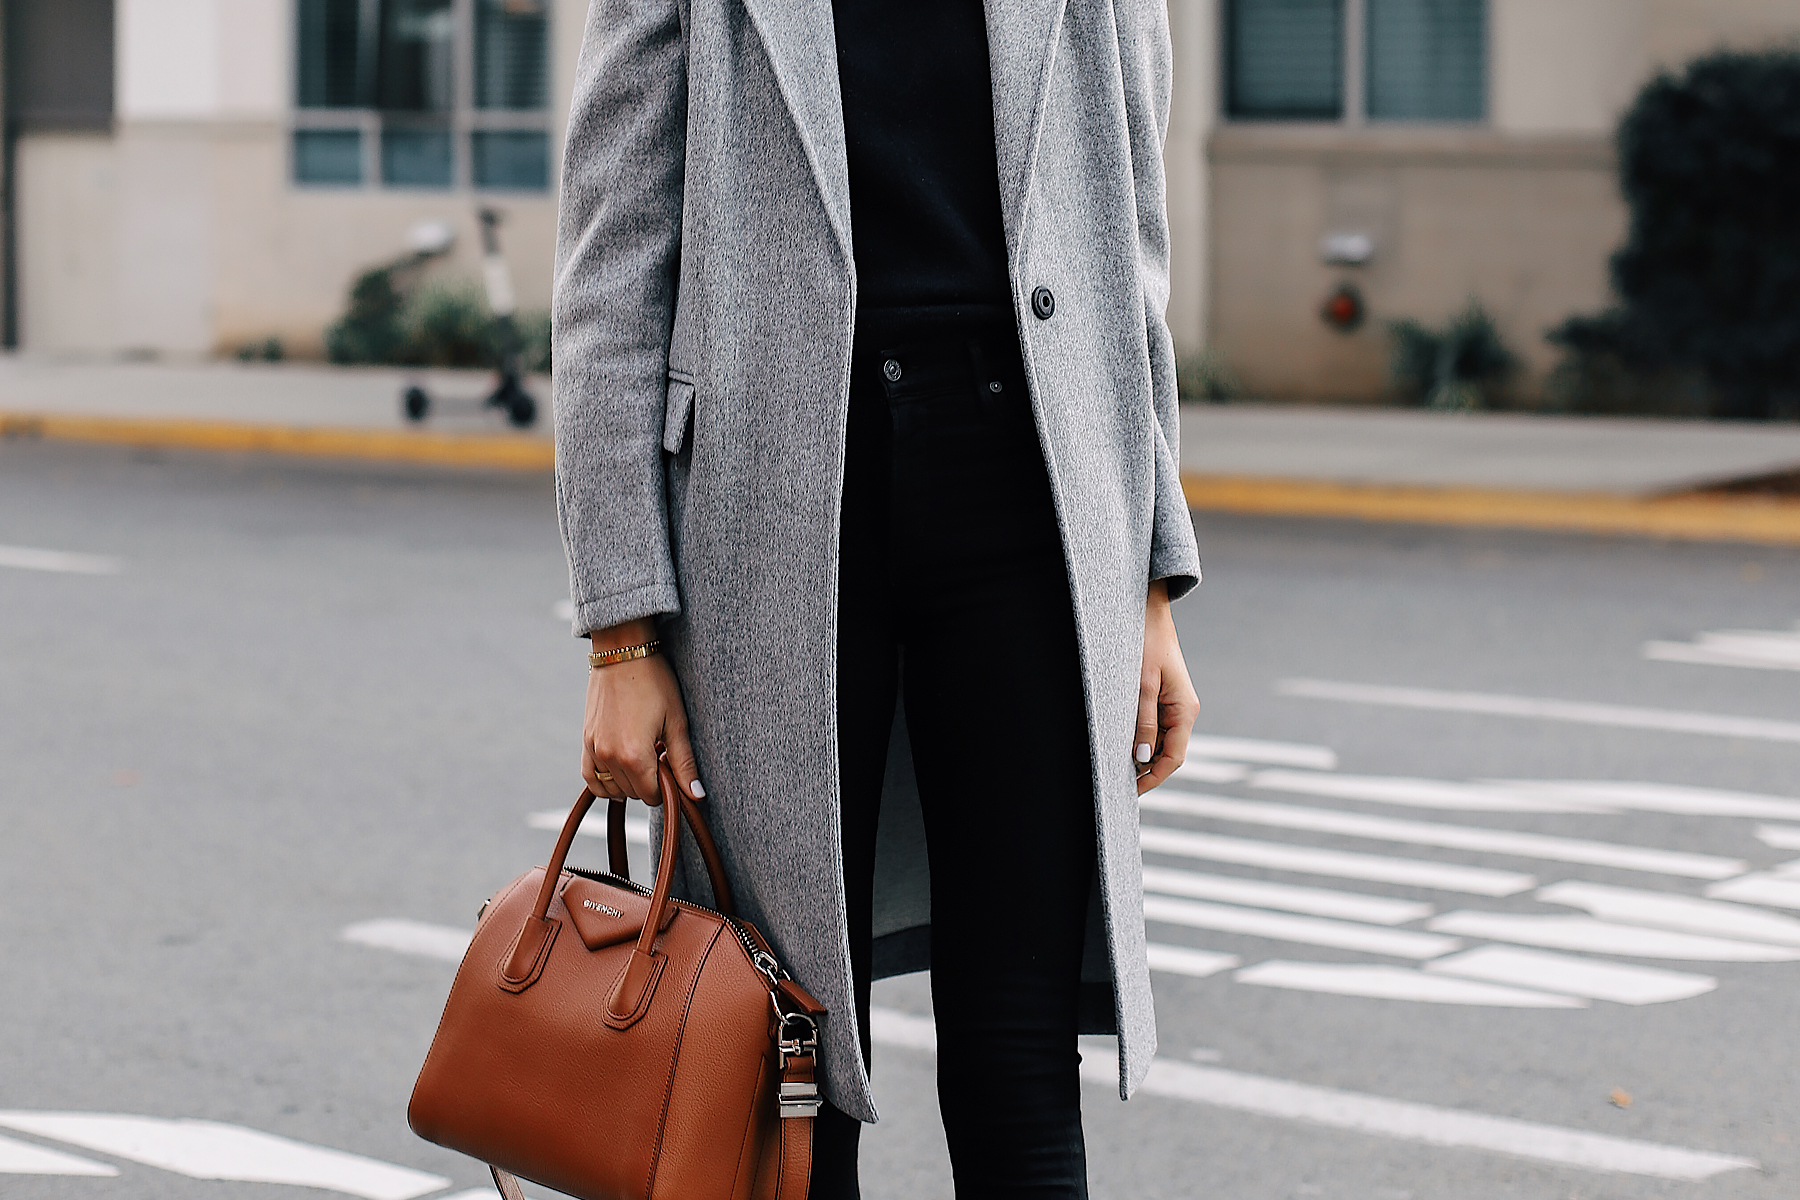 Woman Wearing Topshop Grey Coat Black Skinny Jeans Givenchy Antigona Cognac Handbag Fashion Jackson San Diego Fashion Blogger Street Style